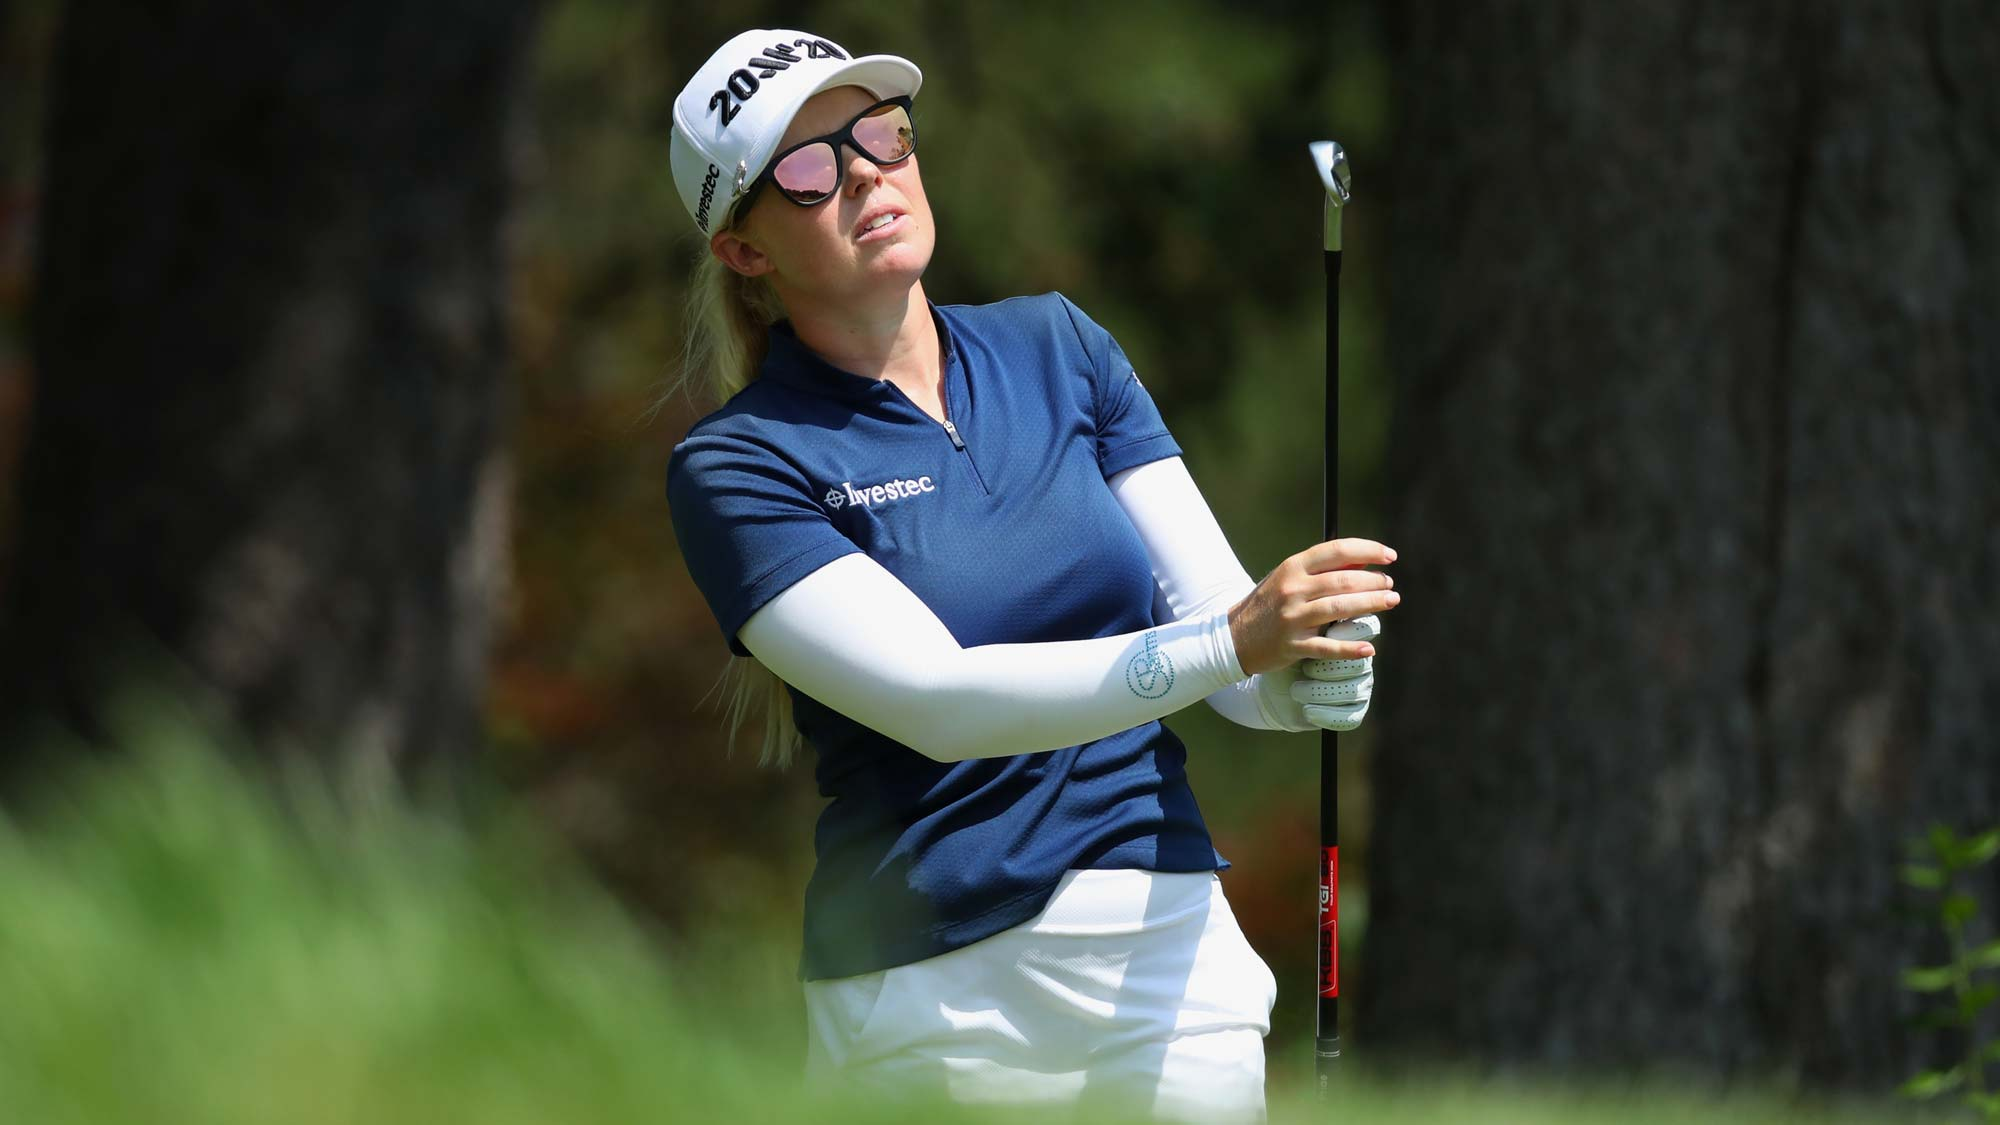 Stephanie Meadow of Northern Ireland watches her tee shot on the seventh hole during round three of the Dow Great Lakes Bay Invitational